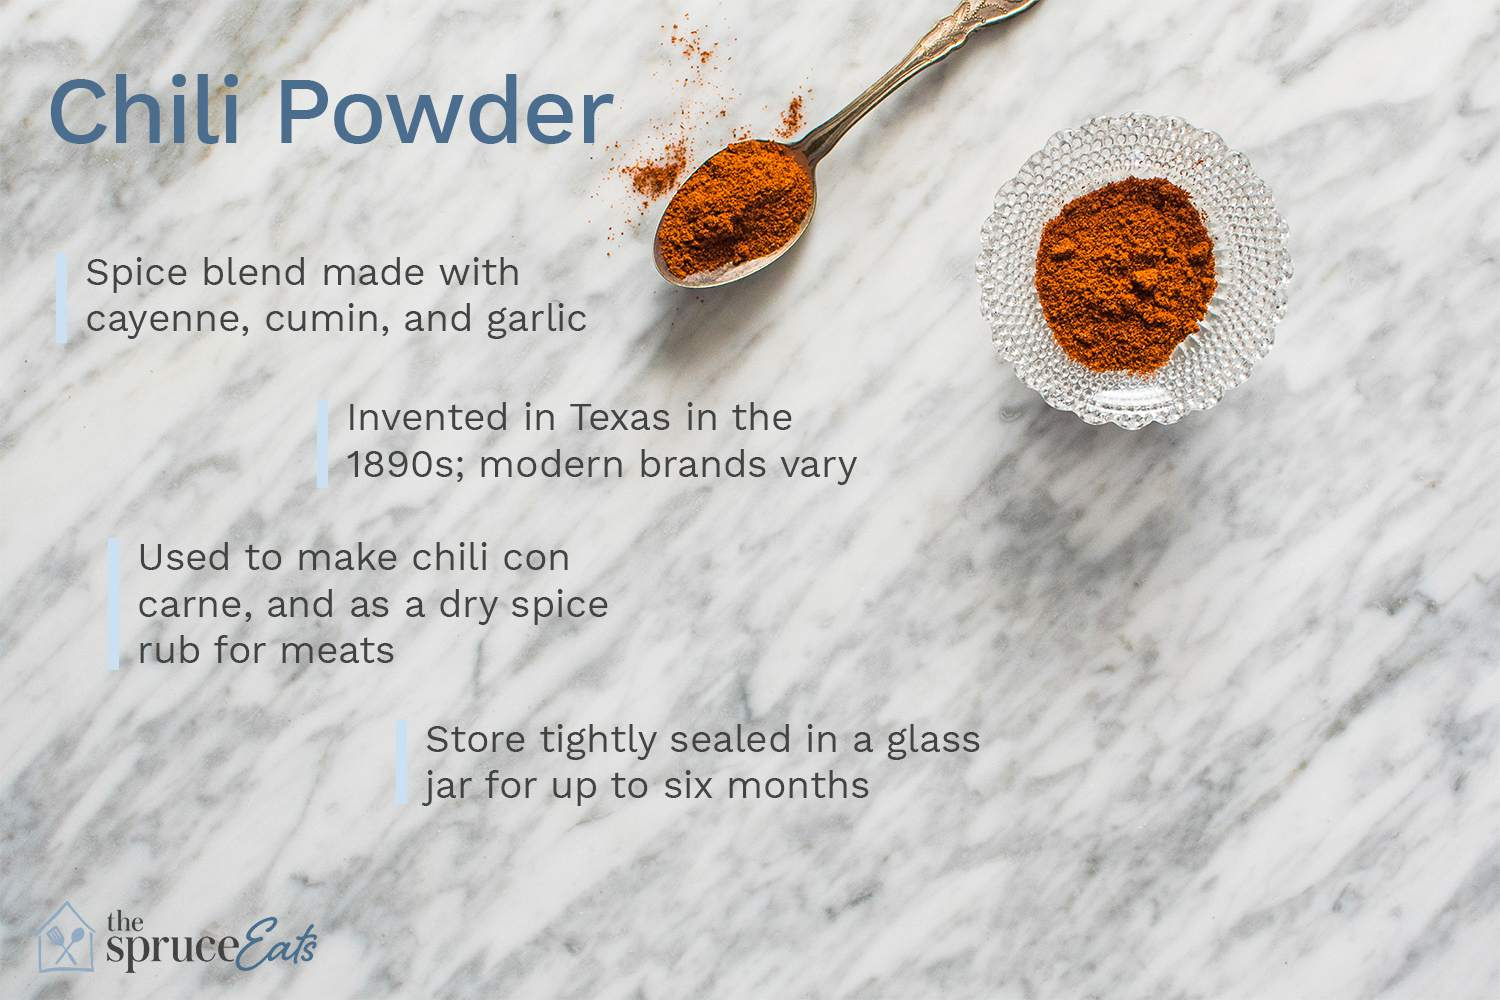 What Is Chili Powder And How Is It Used